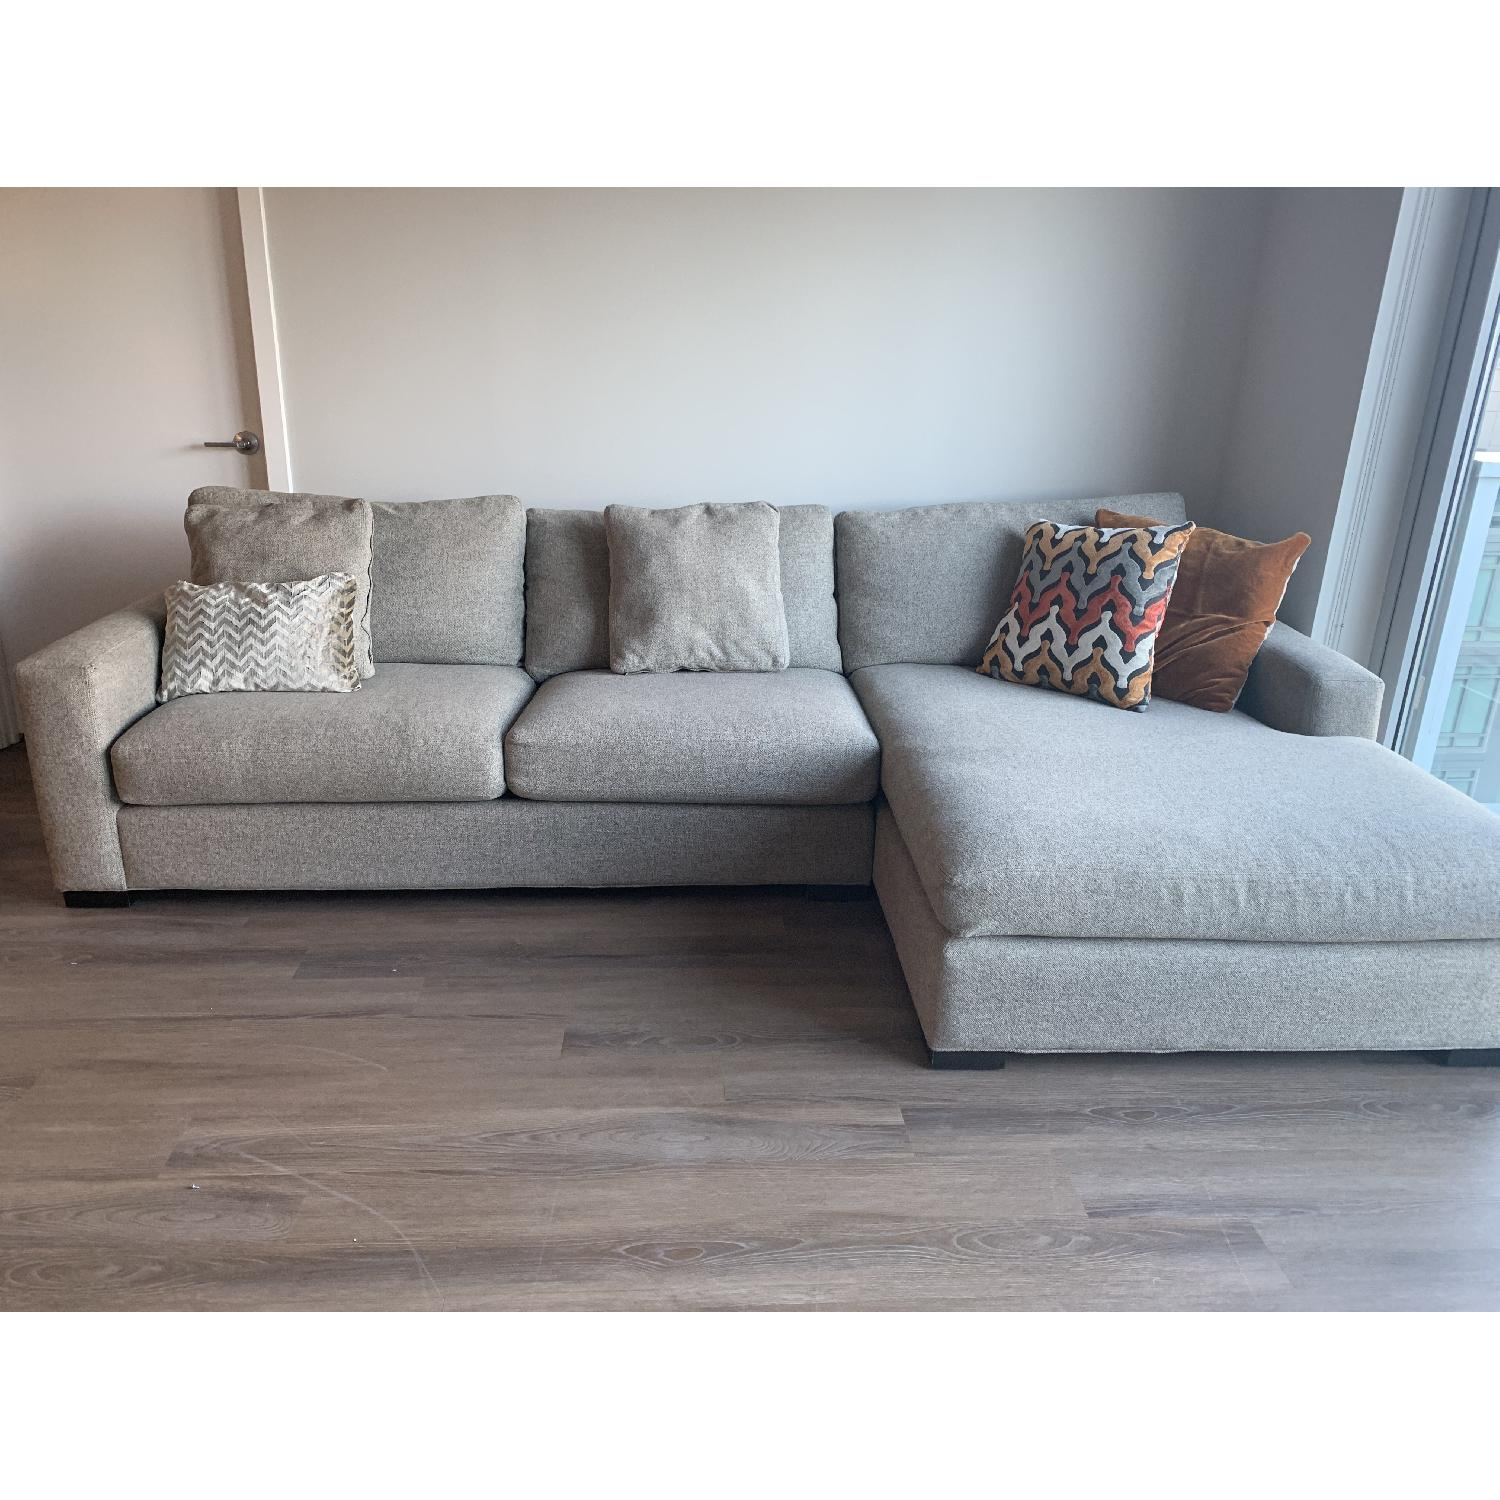 Room & Board Metro Grey Sectional Sofa w/ Right Chaise - image-1